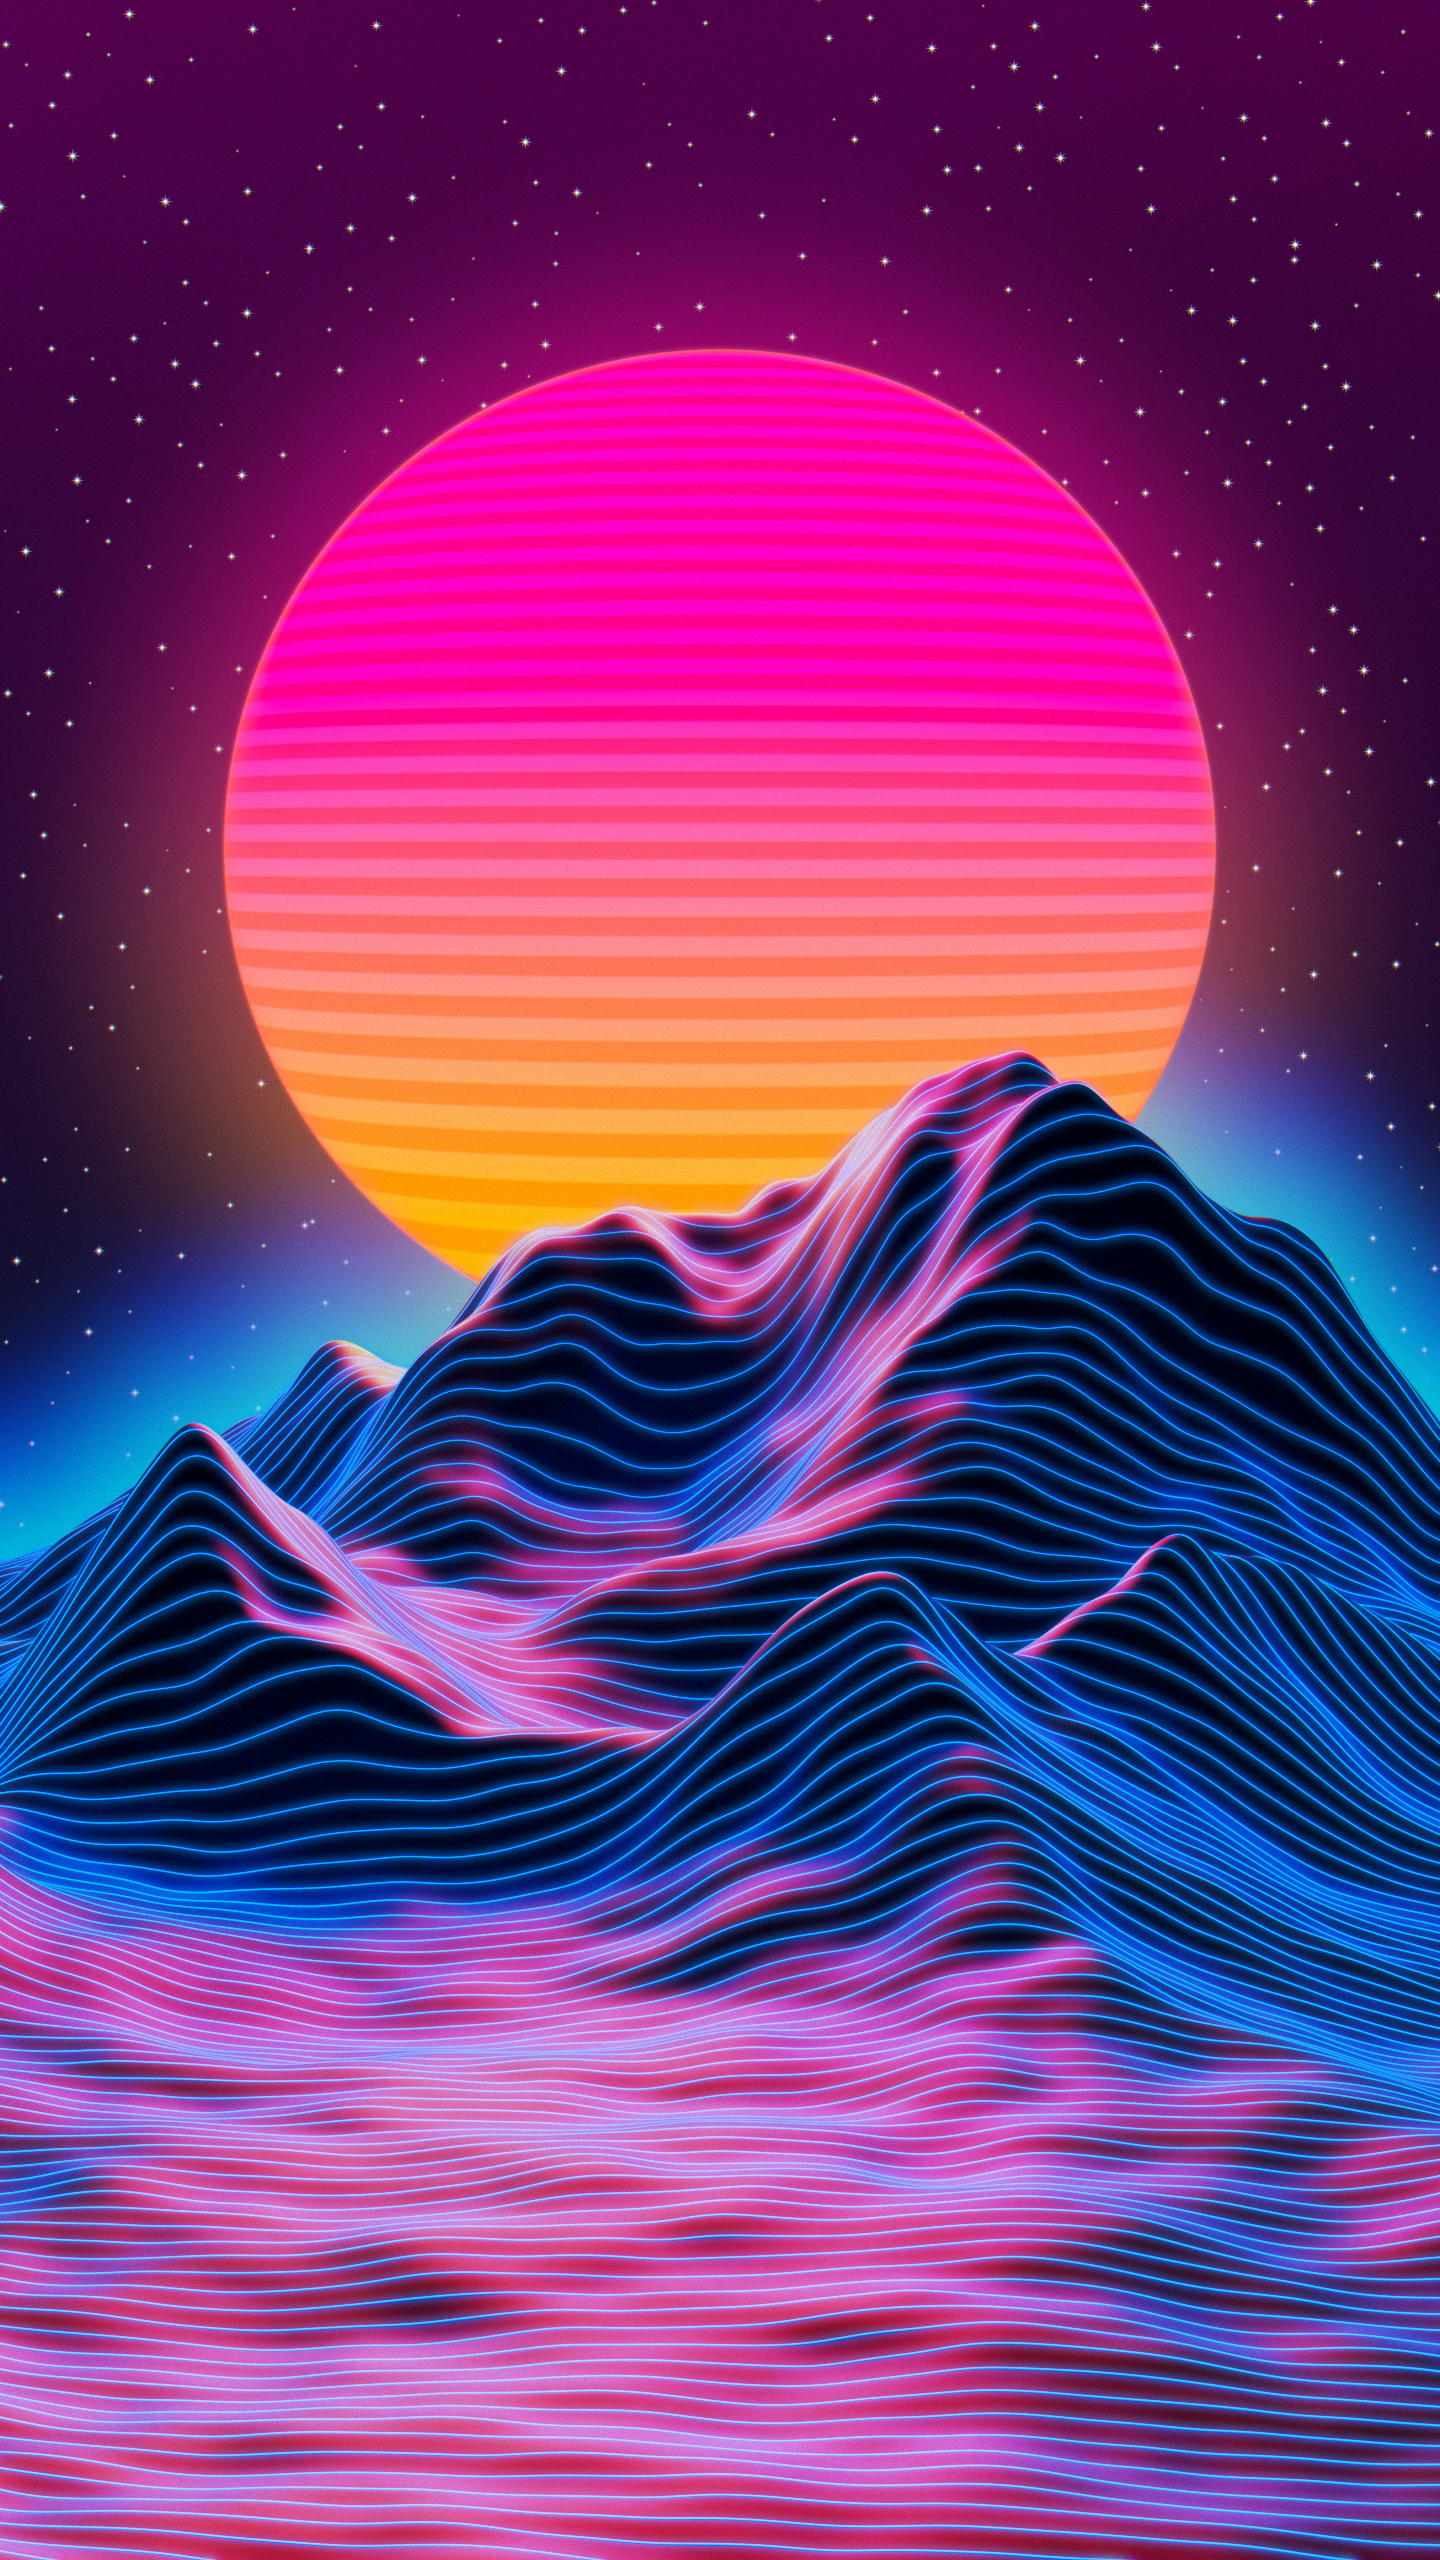 Retro Sunset Blender Gimp Vaporwave Wallpaper Glitch Wallpaper Trippy Wallpaper